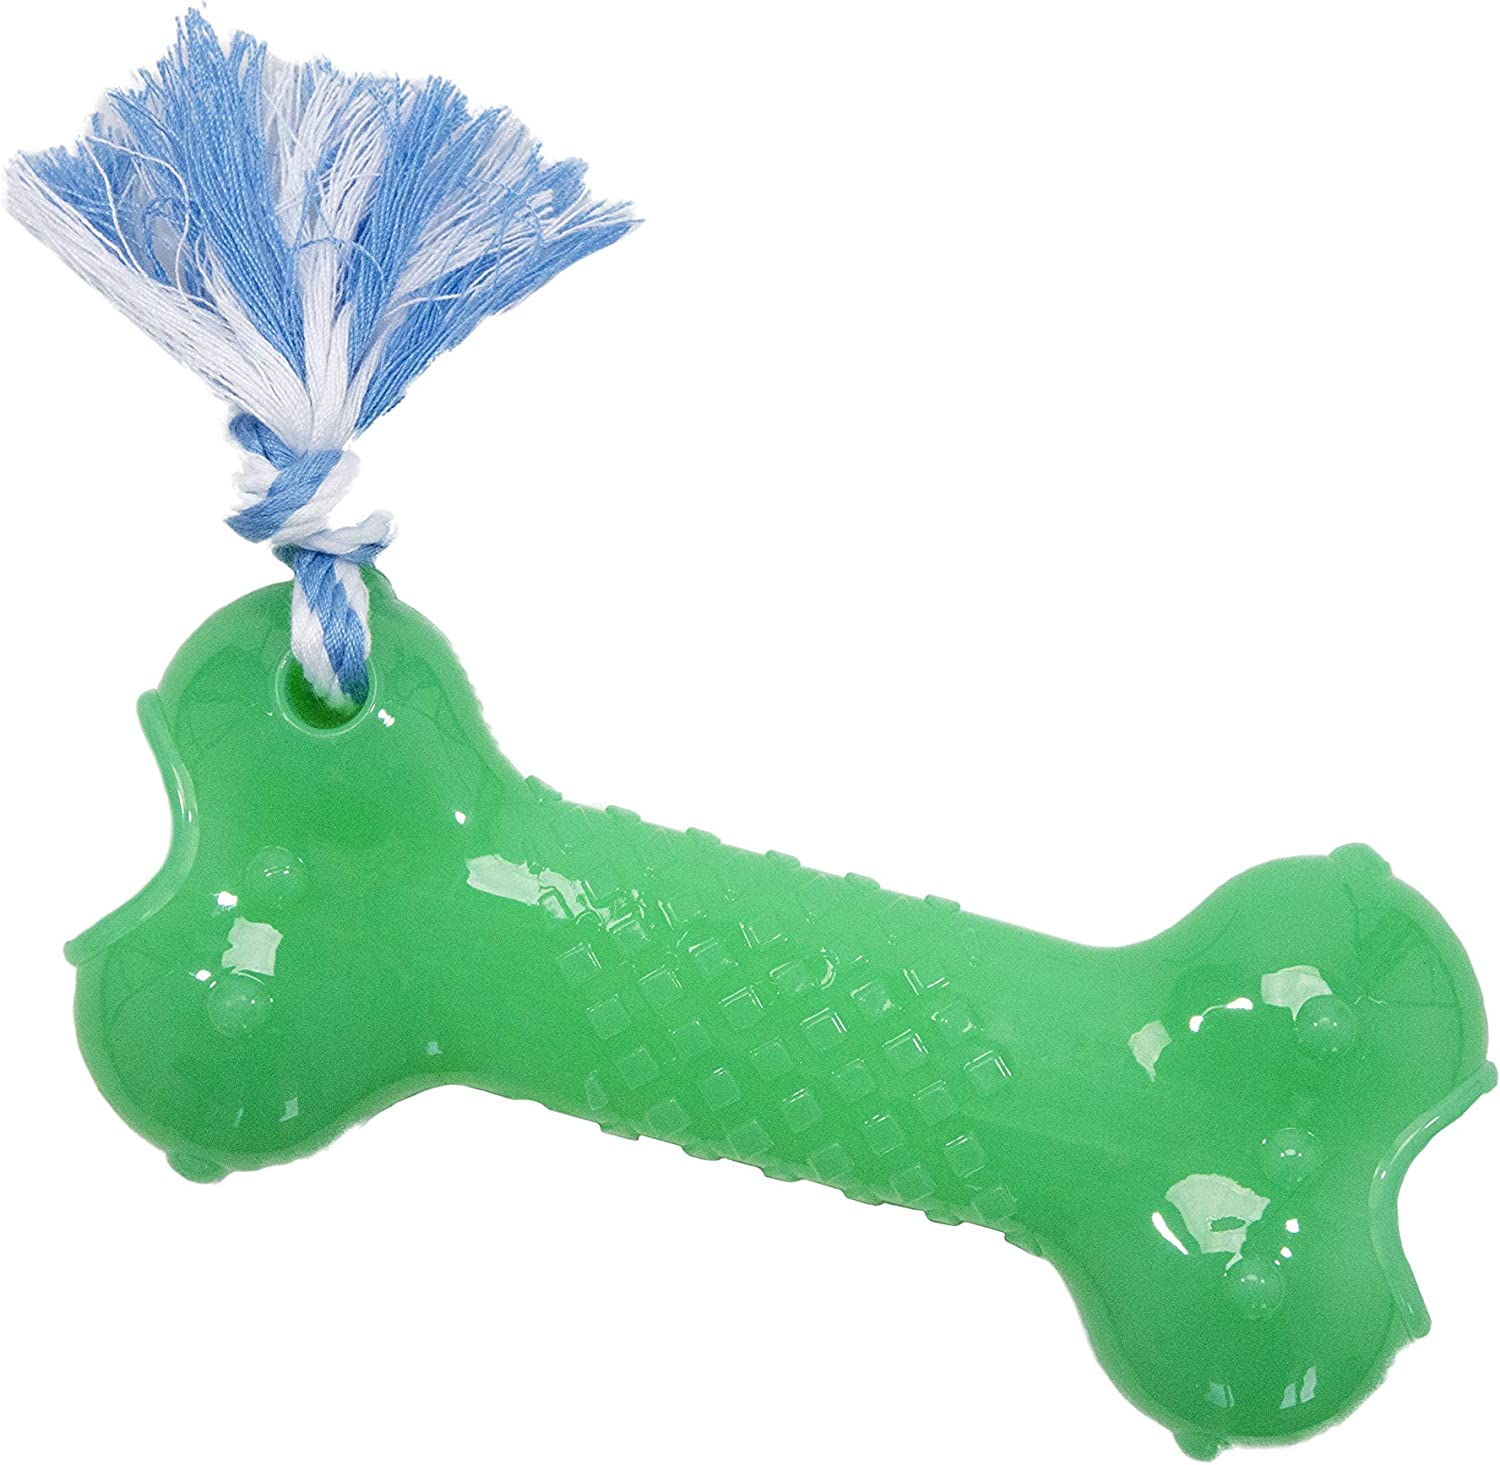 Petstages Orka Bone Green Dog Toy Treat-Dispensing Outlet Max 78% OFF SALE Chew